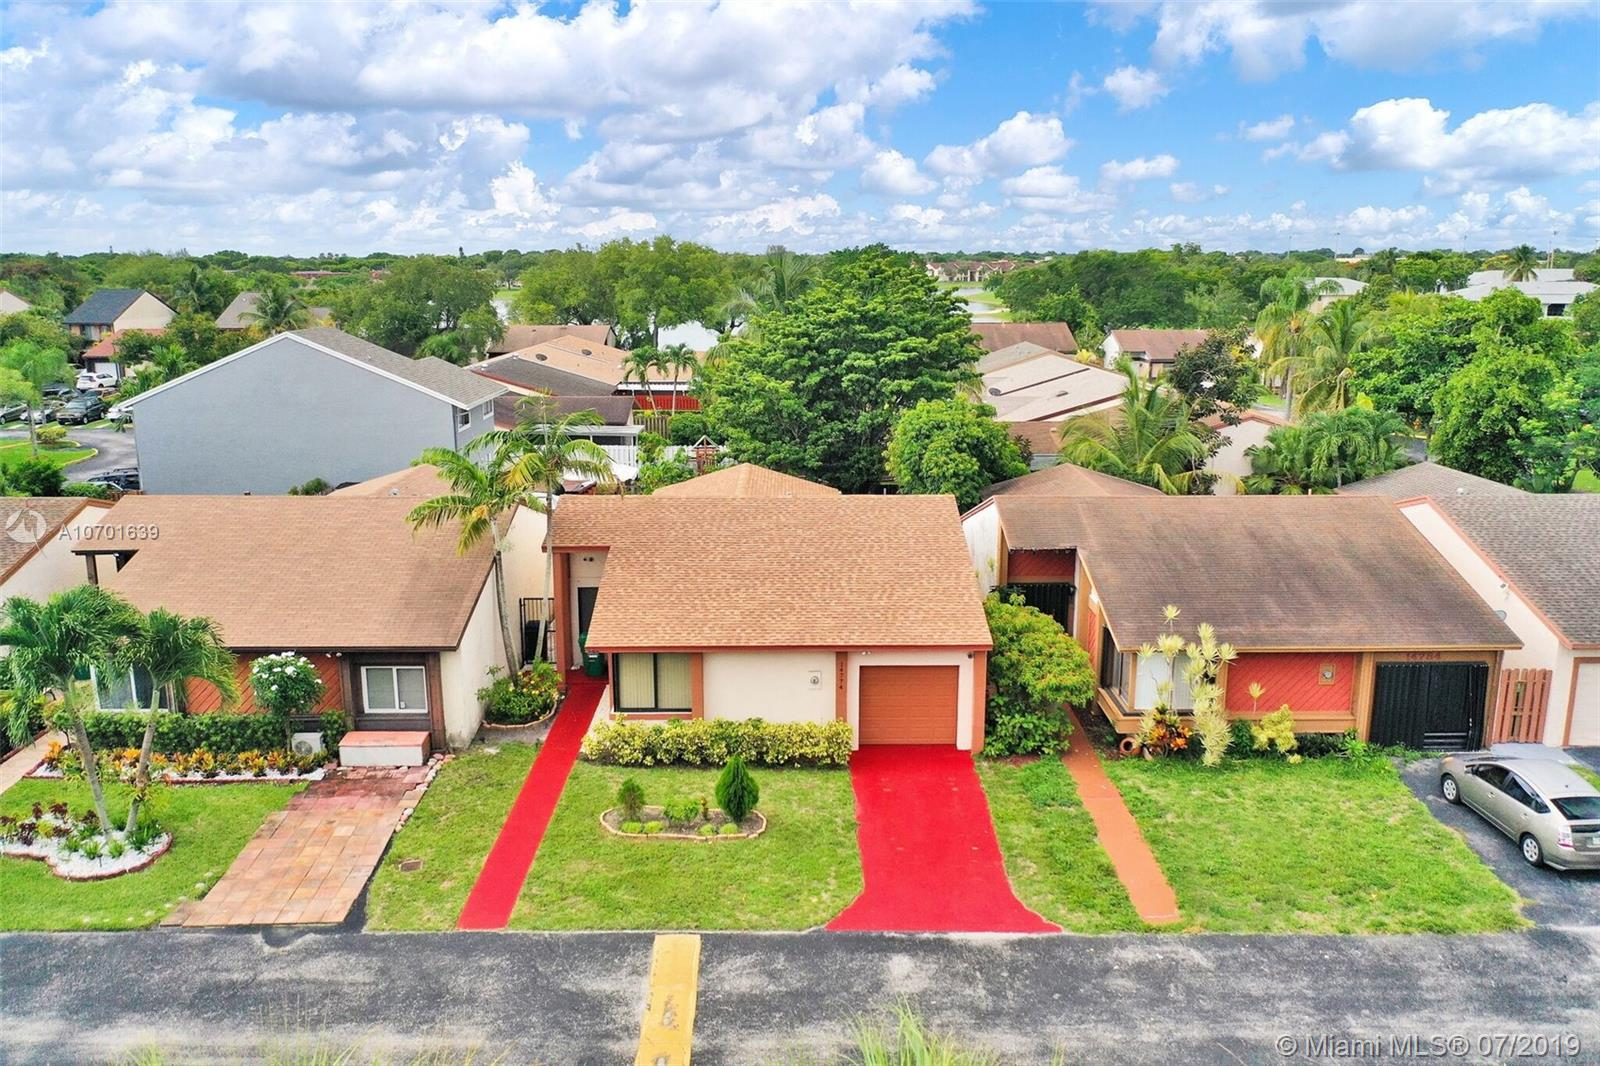 14774 SW 97th Ter, Kendall in Miami-dade County County, FL 33196 Home for Sale